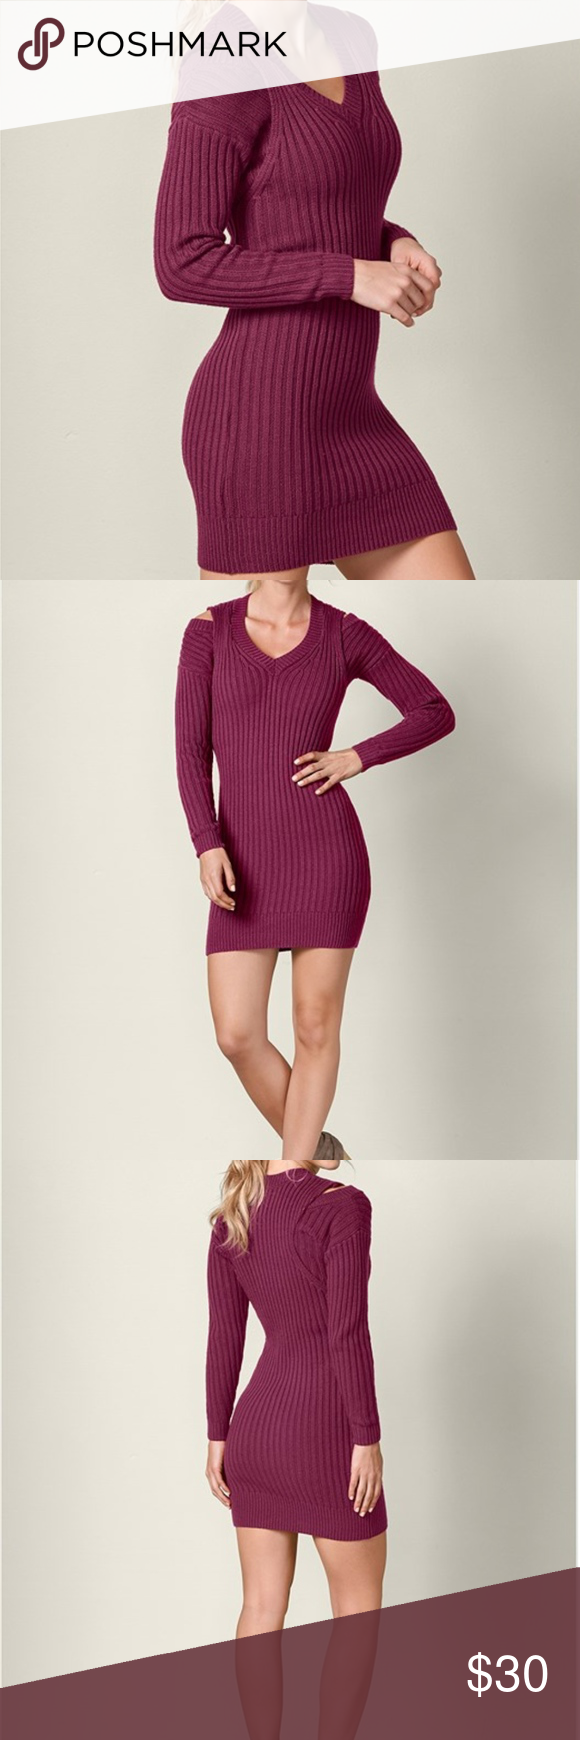 4c0f87a3de4 VENUS V-Neck Sweater Dress NWOT Berry Brand new. Berry color Magically  lengthen your figure with this V-neck